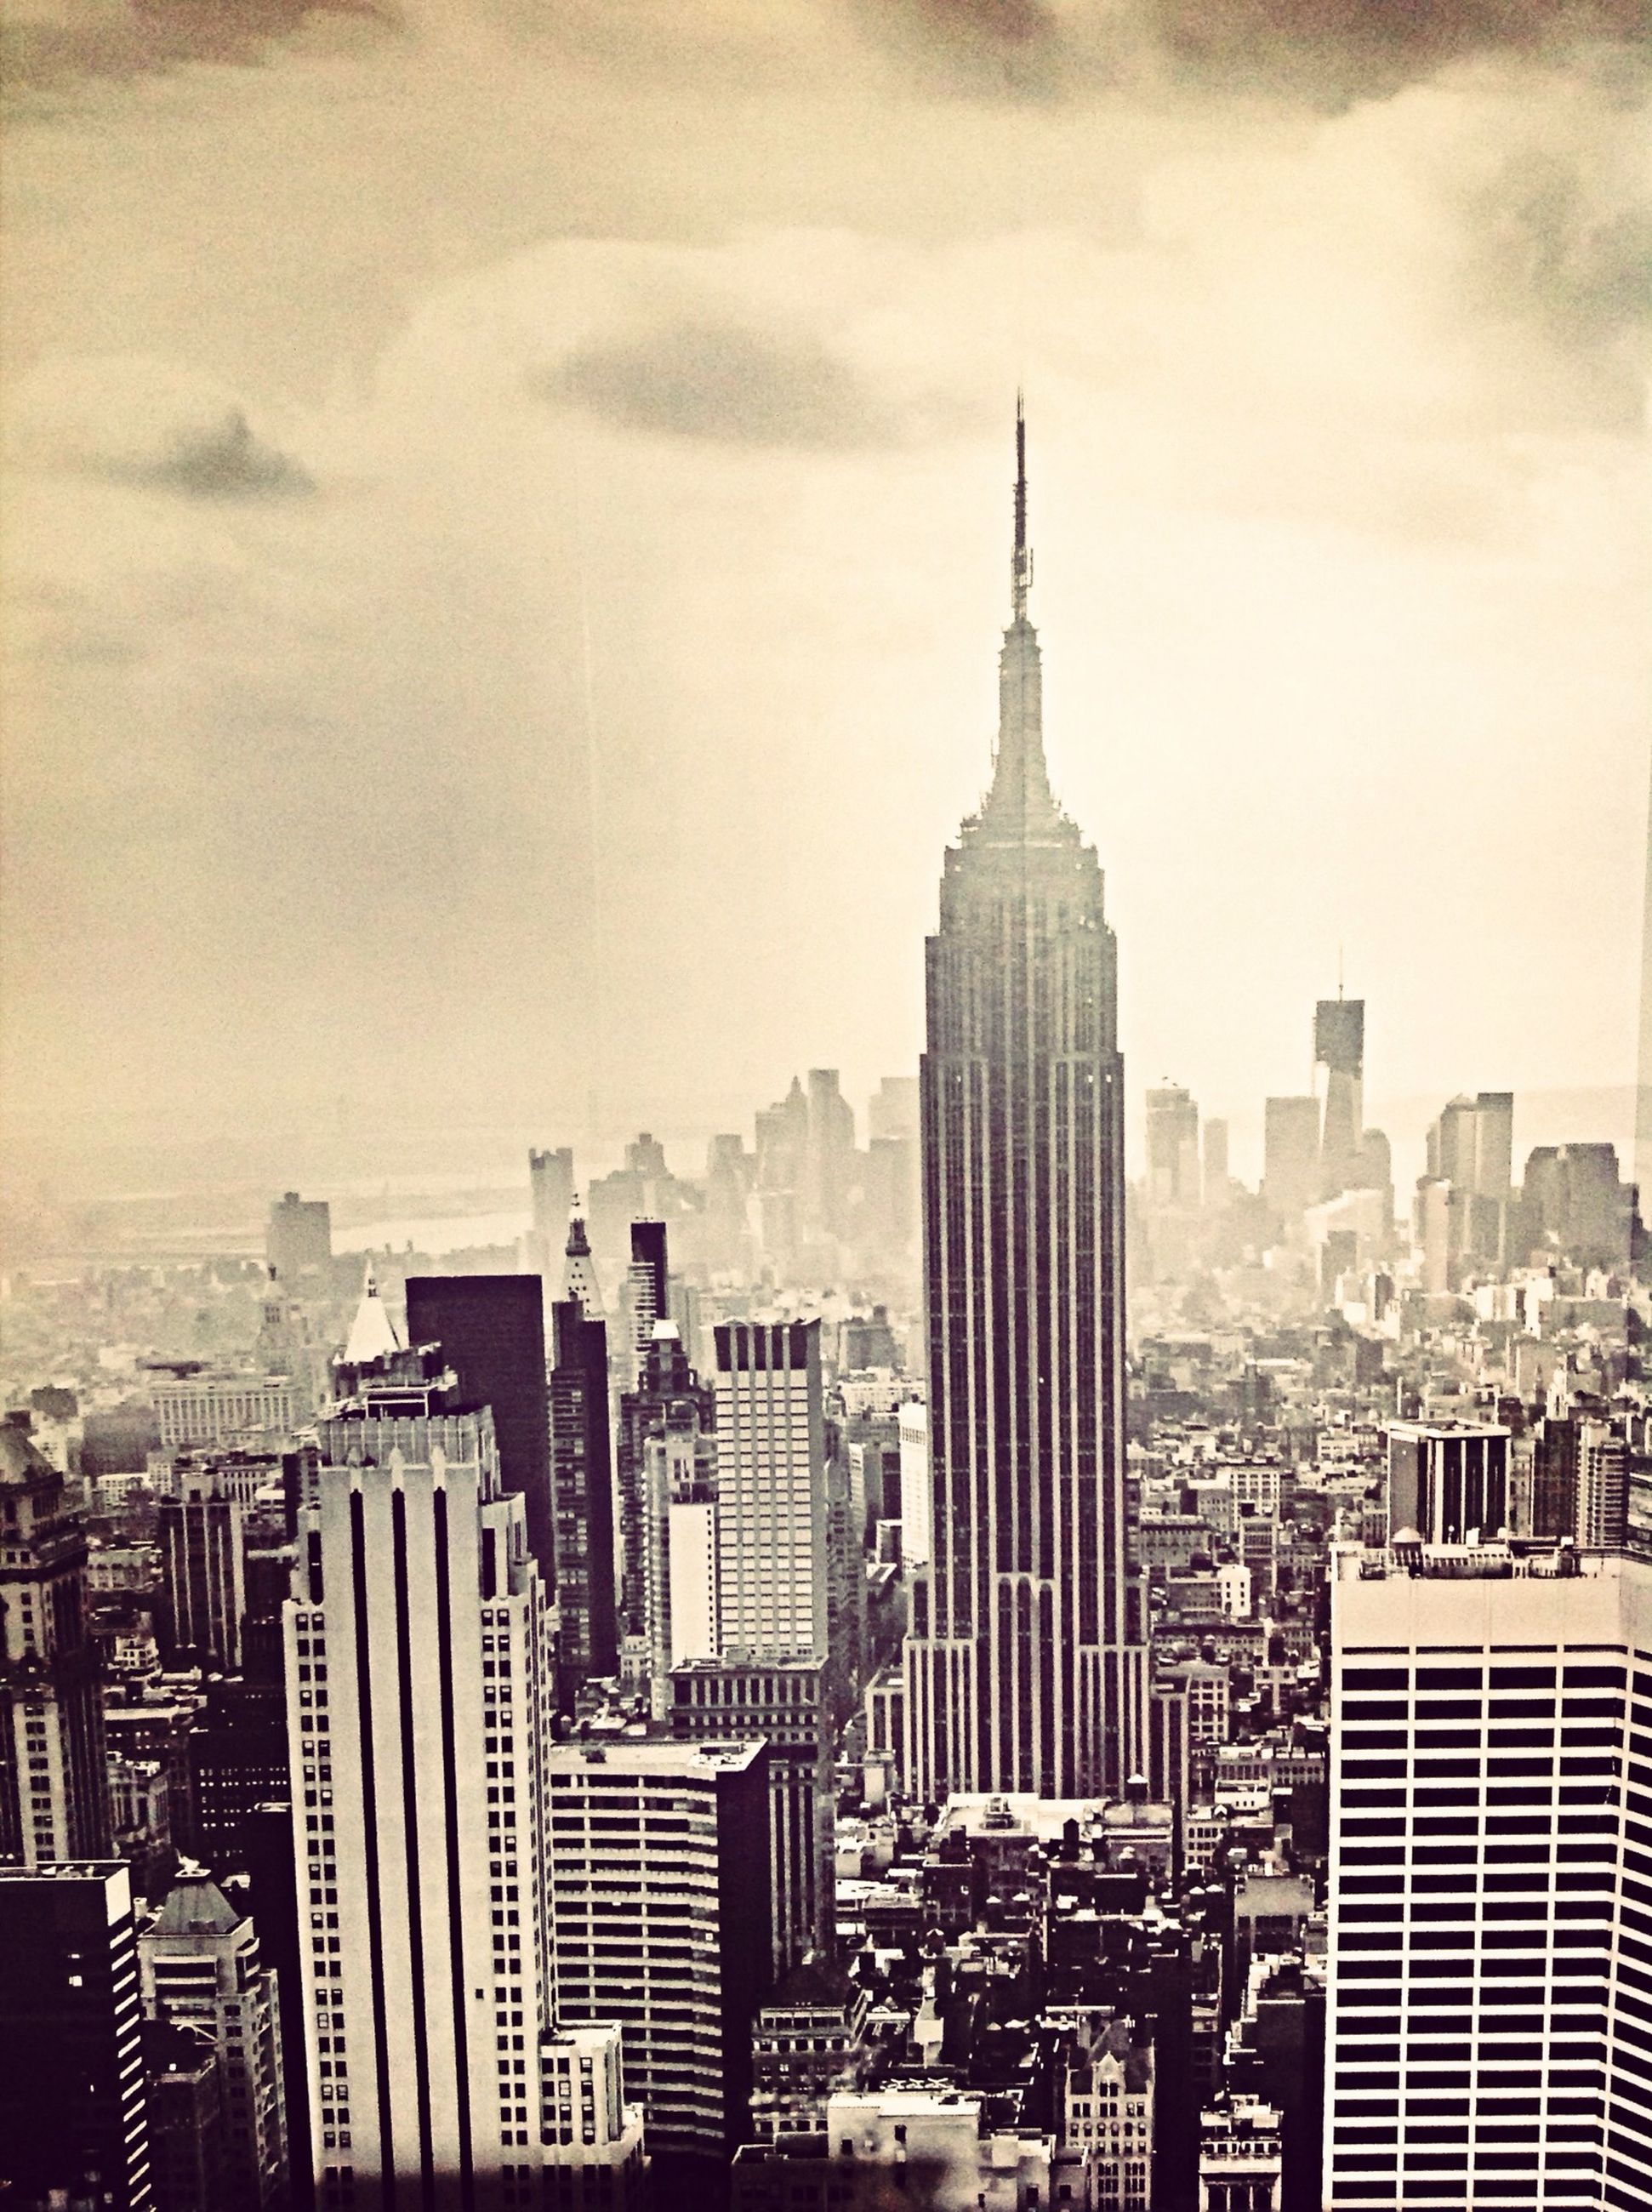 building exterior, architecture, city, skyscraper, built structure, tall - high, cityscape, tower, modern, office building, capital cities, sky, financial district, travel destinations, famous place, international landmark, crowded, empire state building, urban skyline, tourism